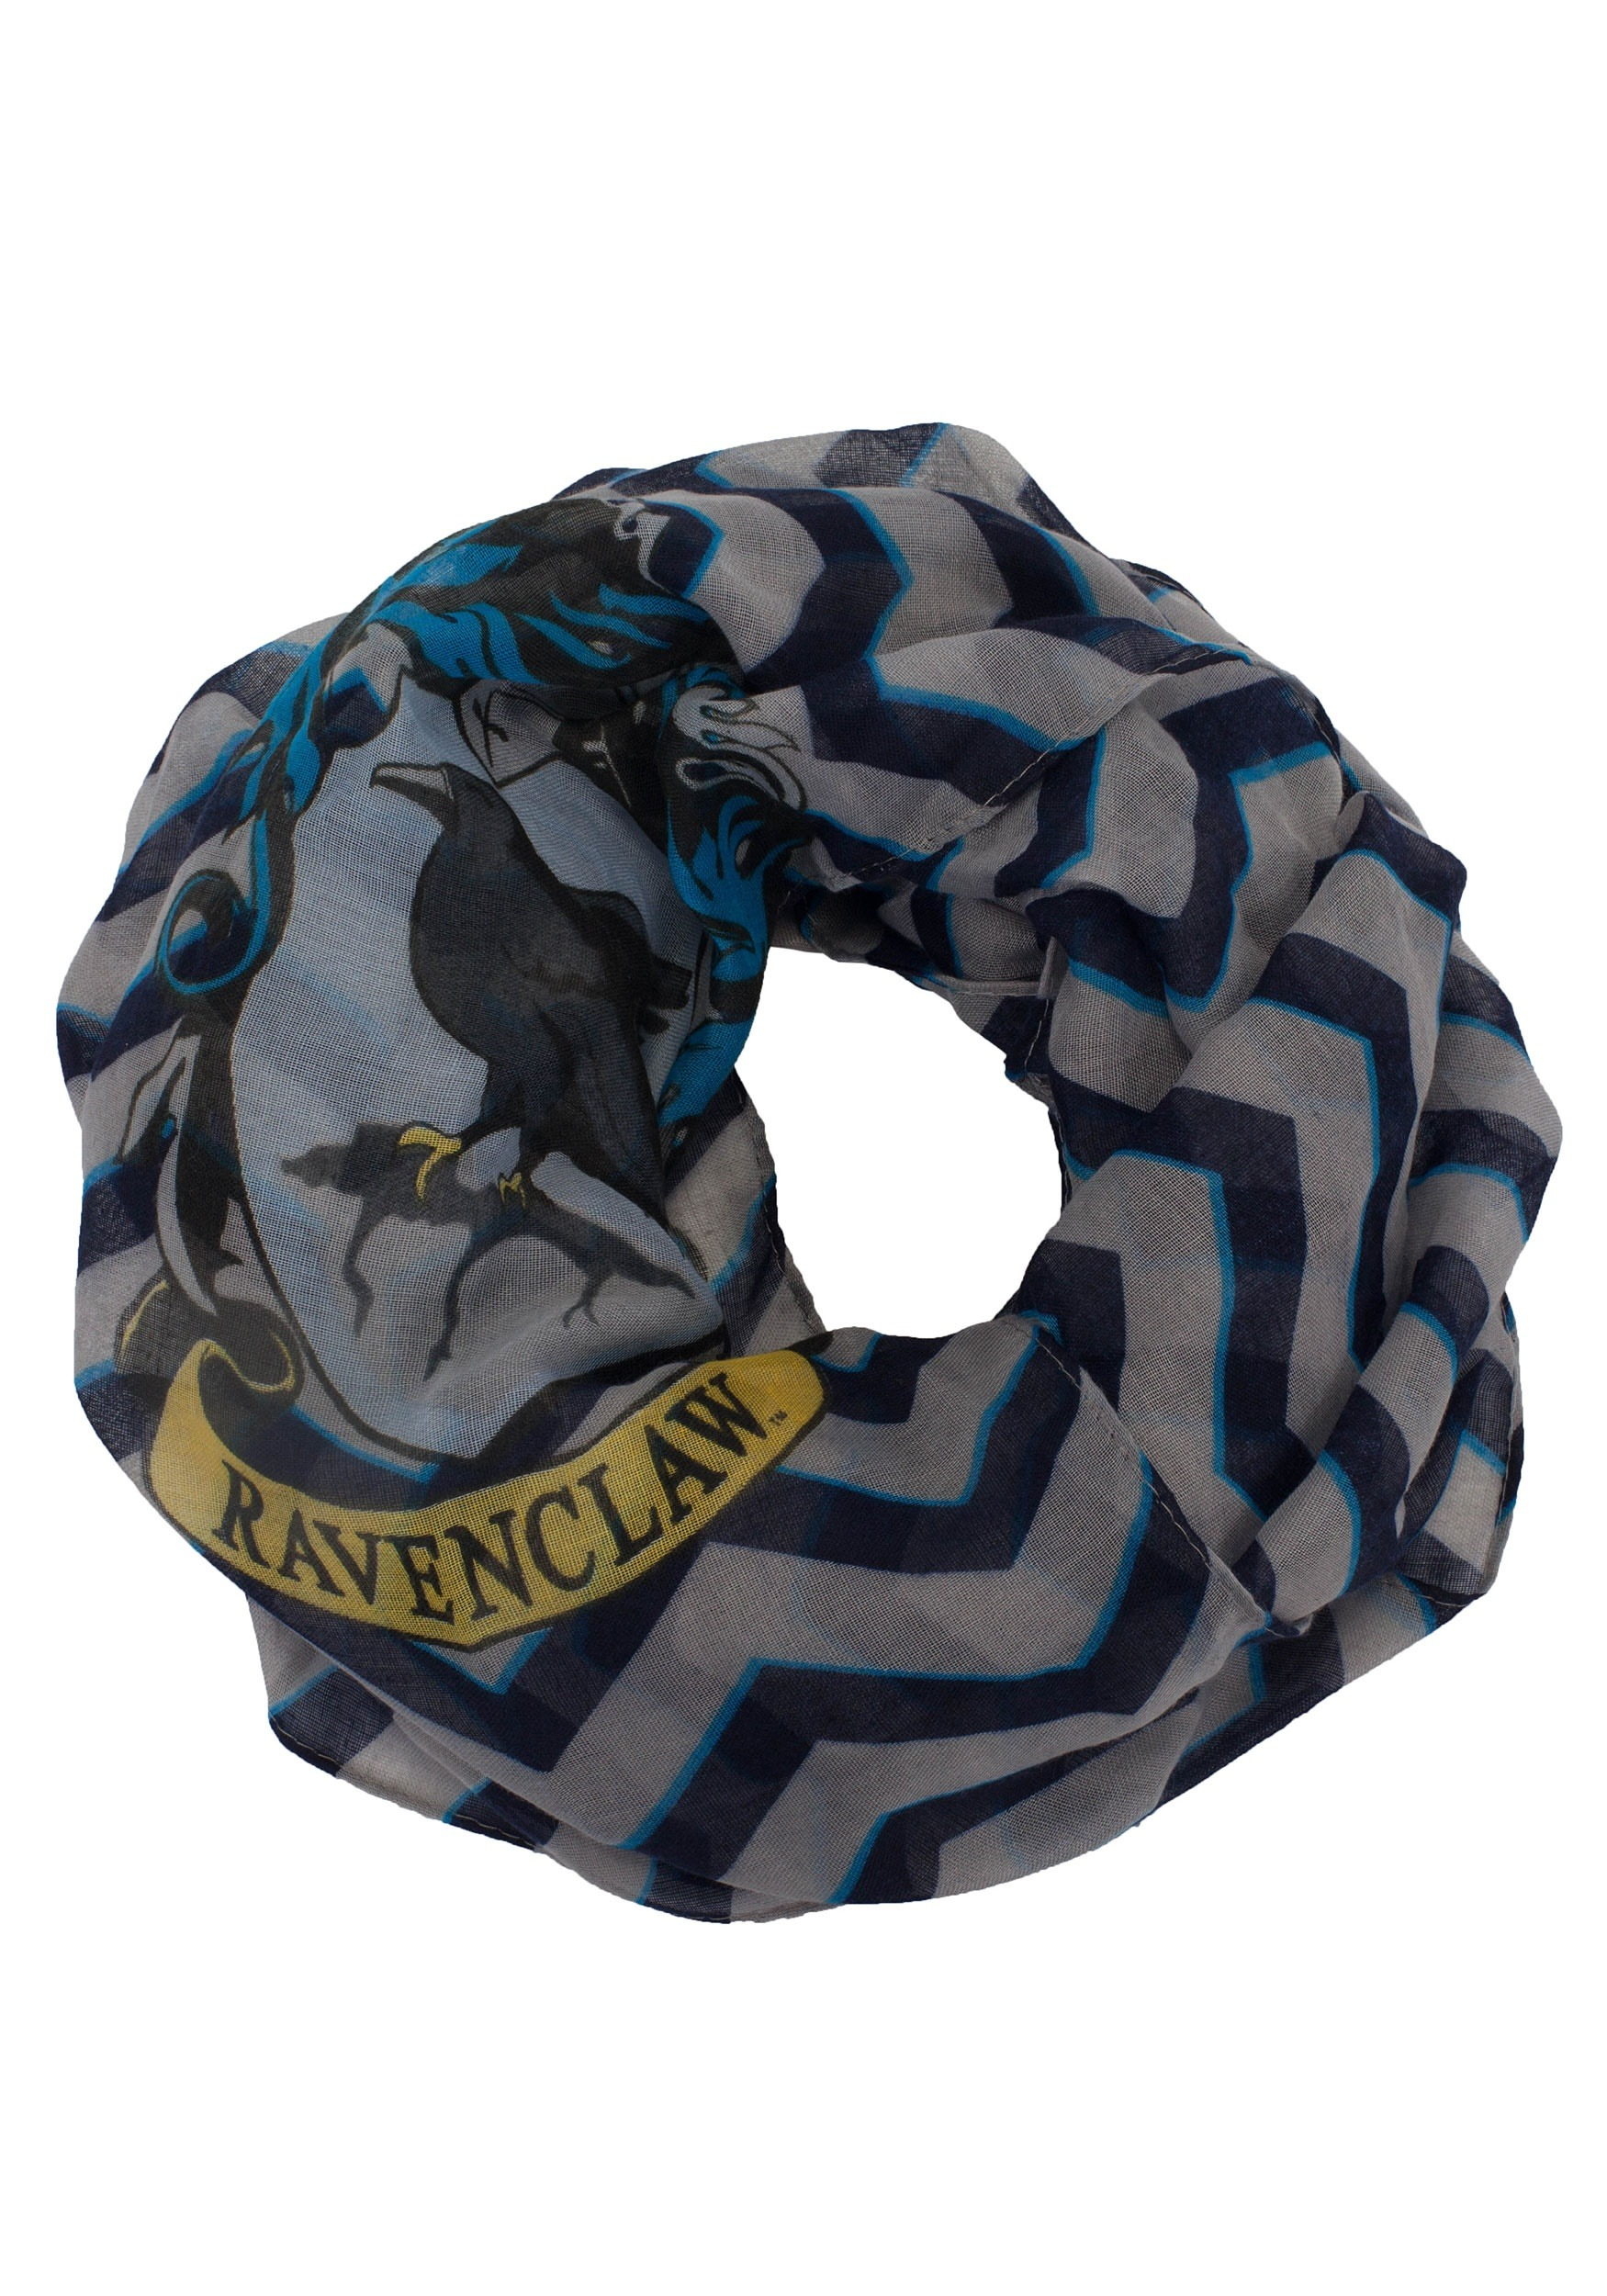 Ravenclaw Infinity Scarf from Harry Potter